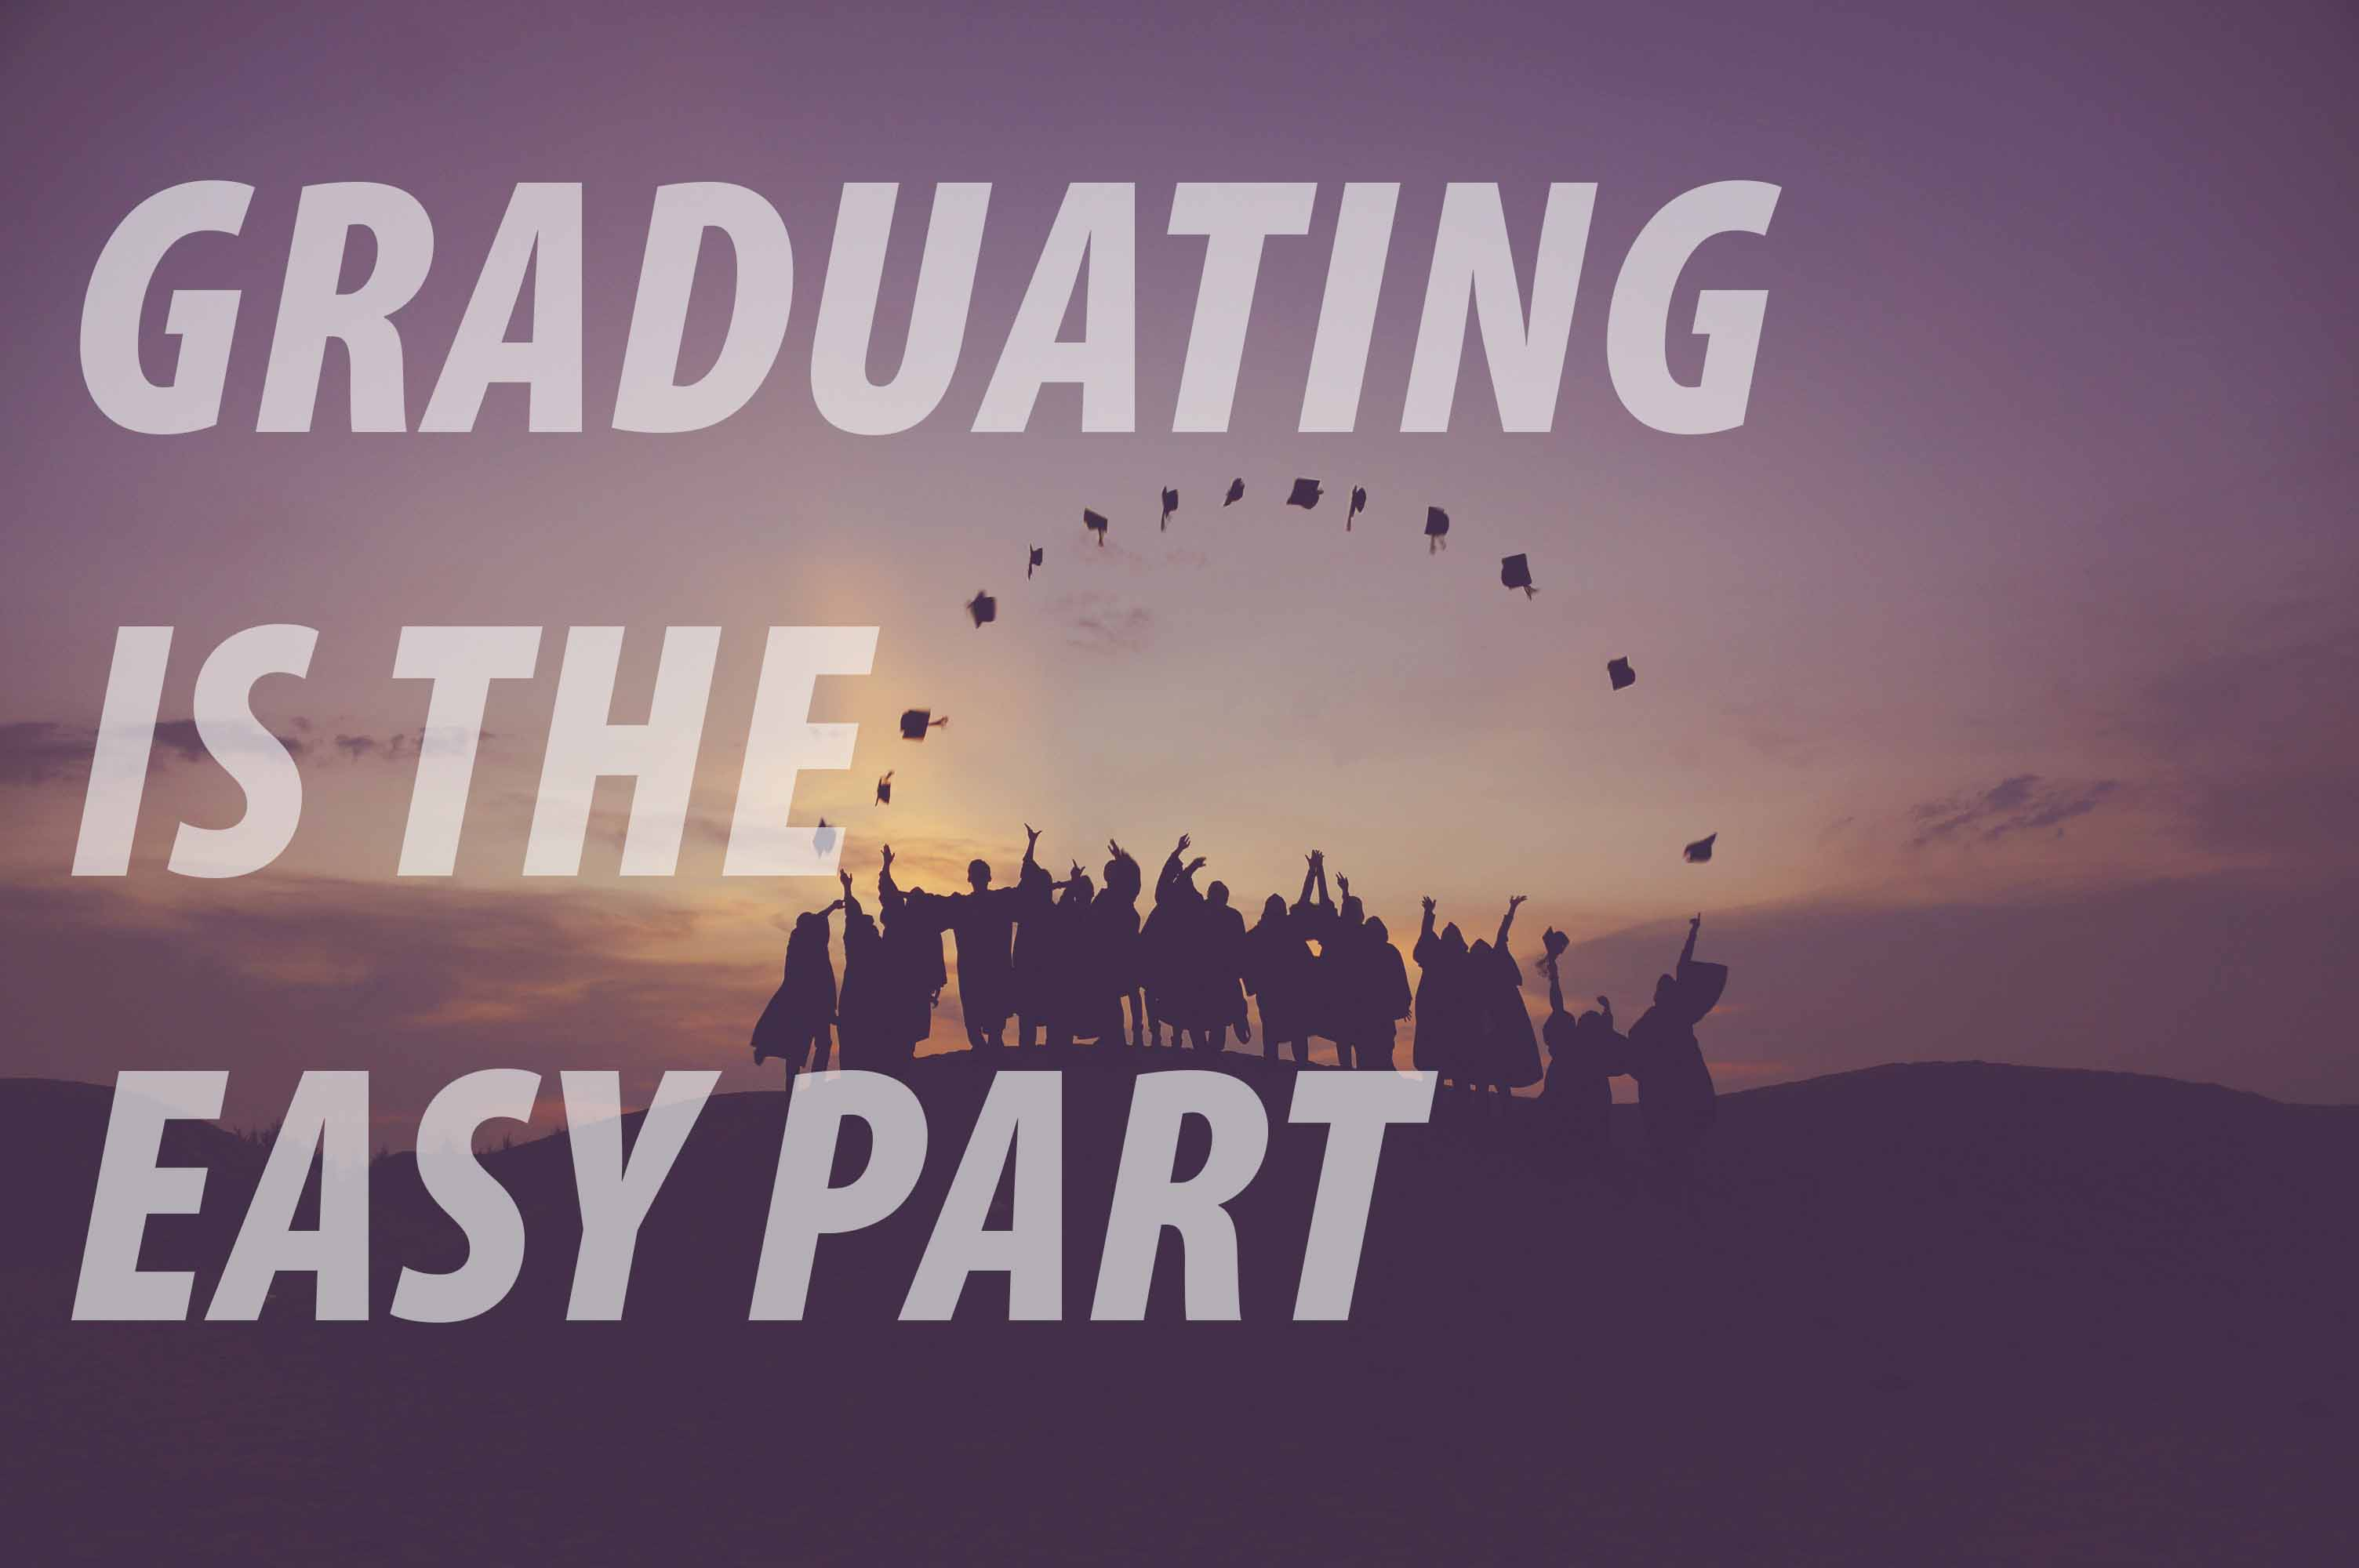 GRADUATING IS THE EASY PART